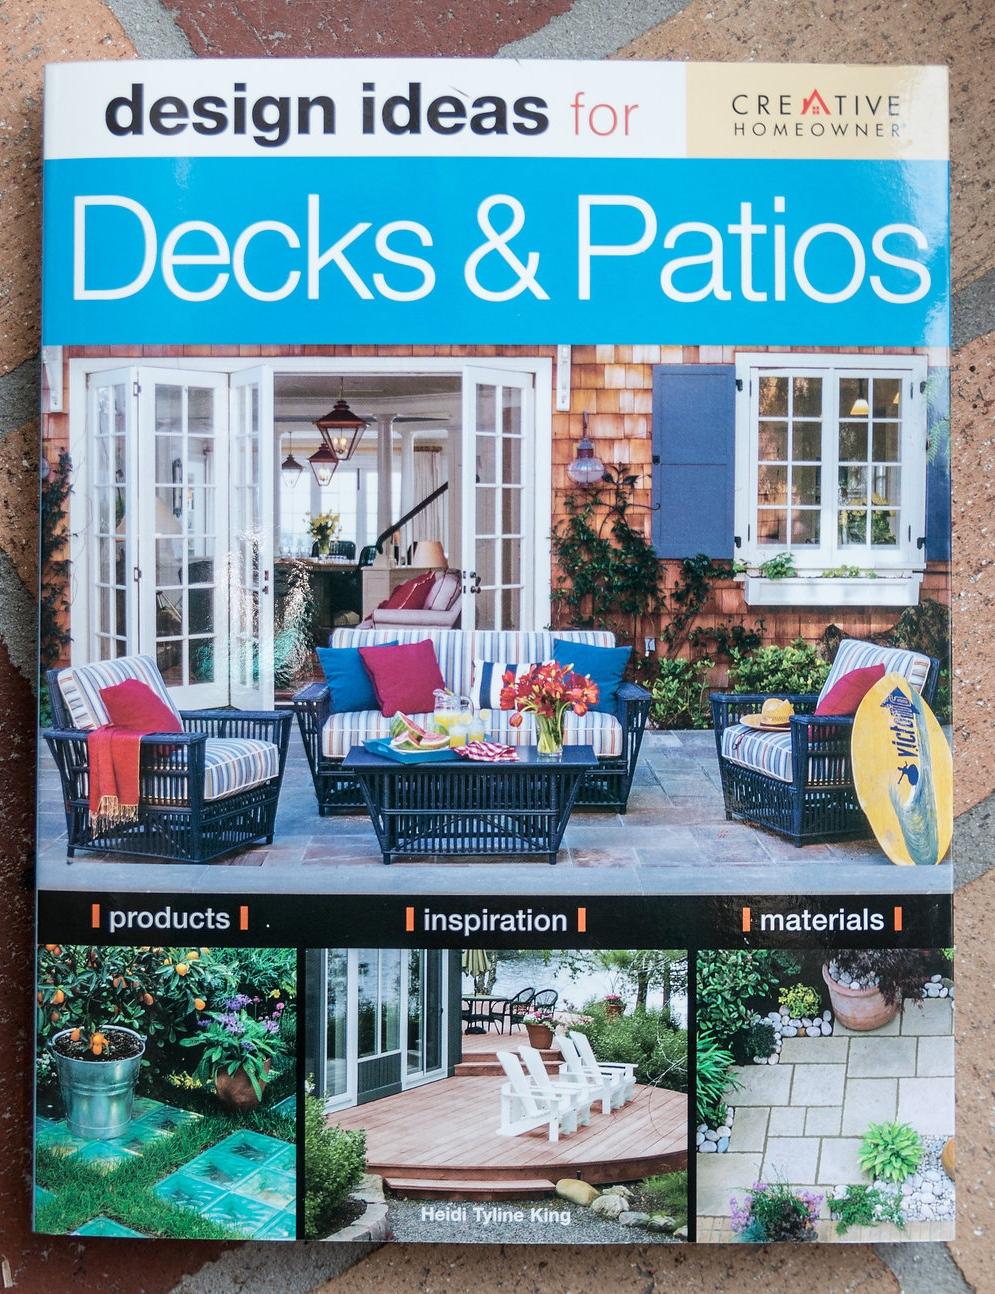 Design Ideas Decks and Patios lifestyle coffee table book.jpg